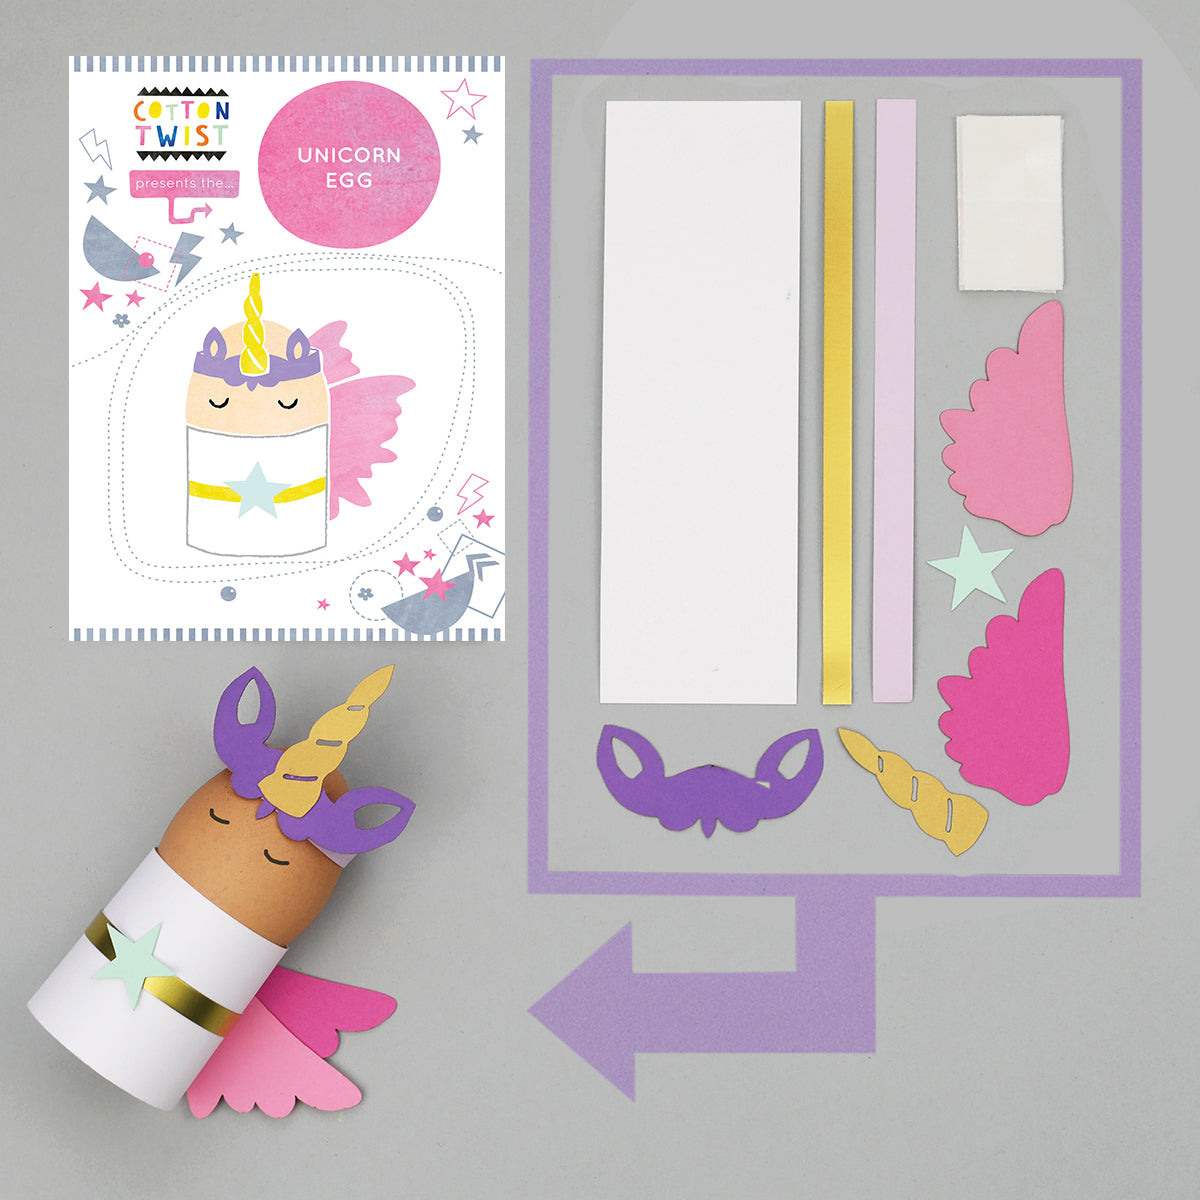 make your own unicorn egg character